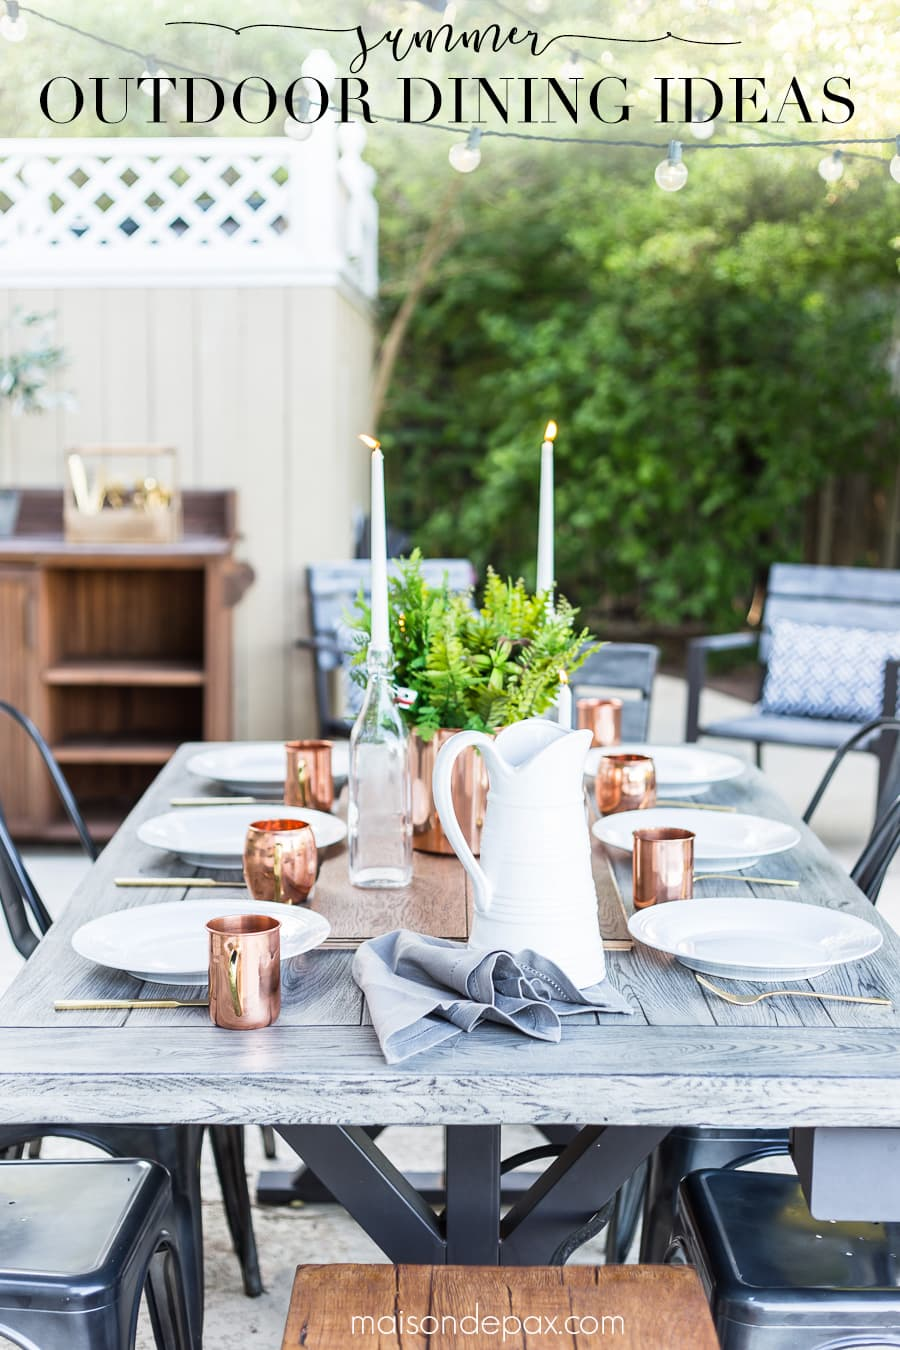 Get simple tips for creating a simple, casually elegant summer dining table! #outdoordining #outdoorentertaining #summerentertaining #summerdining